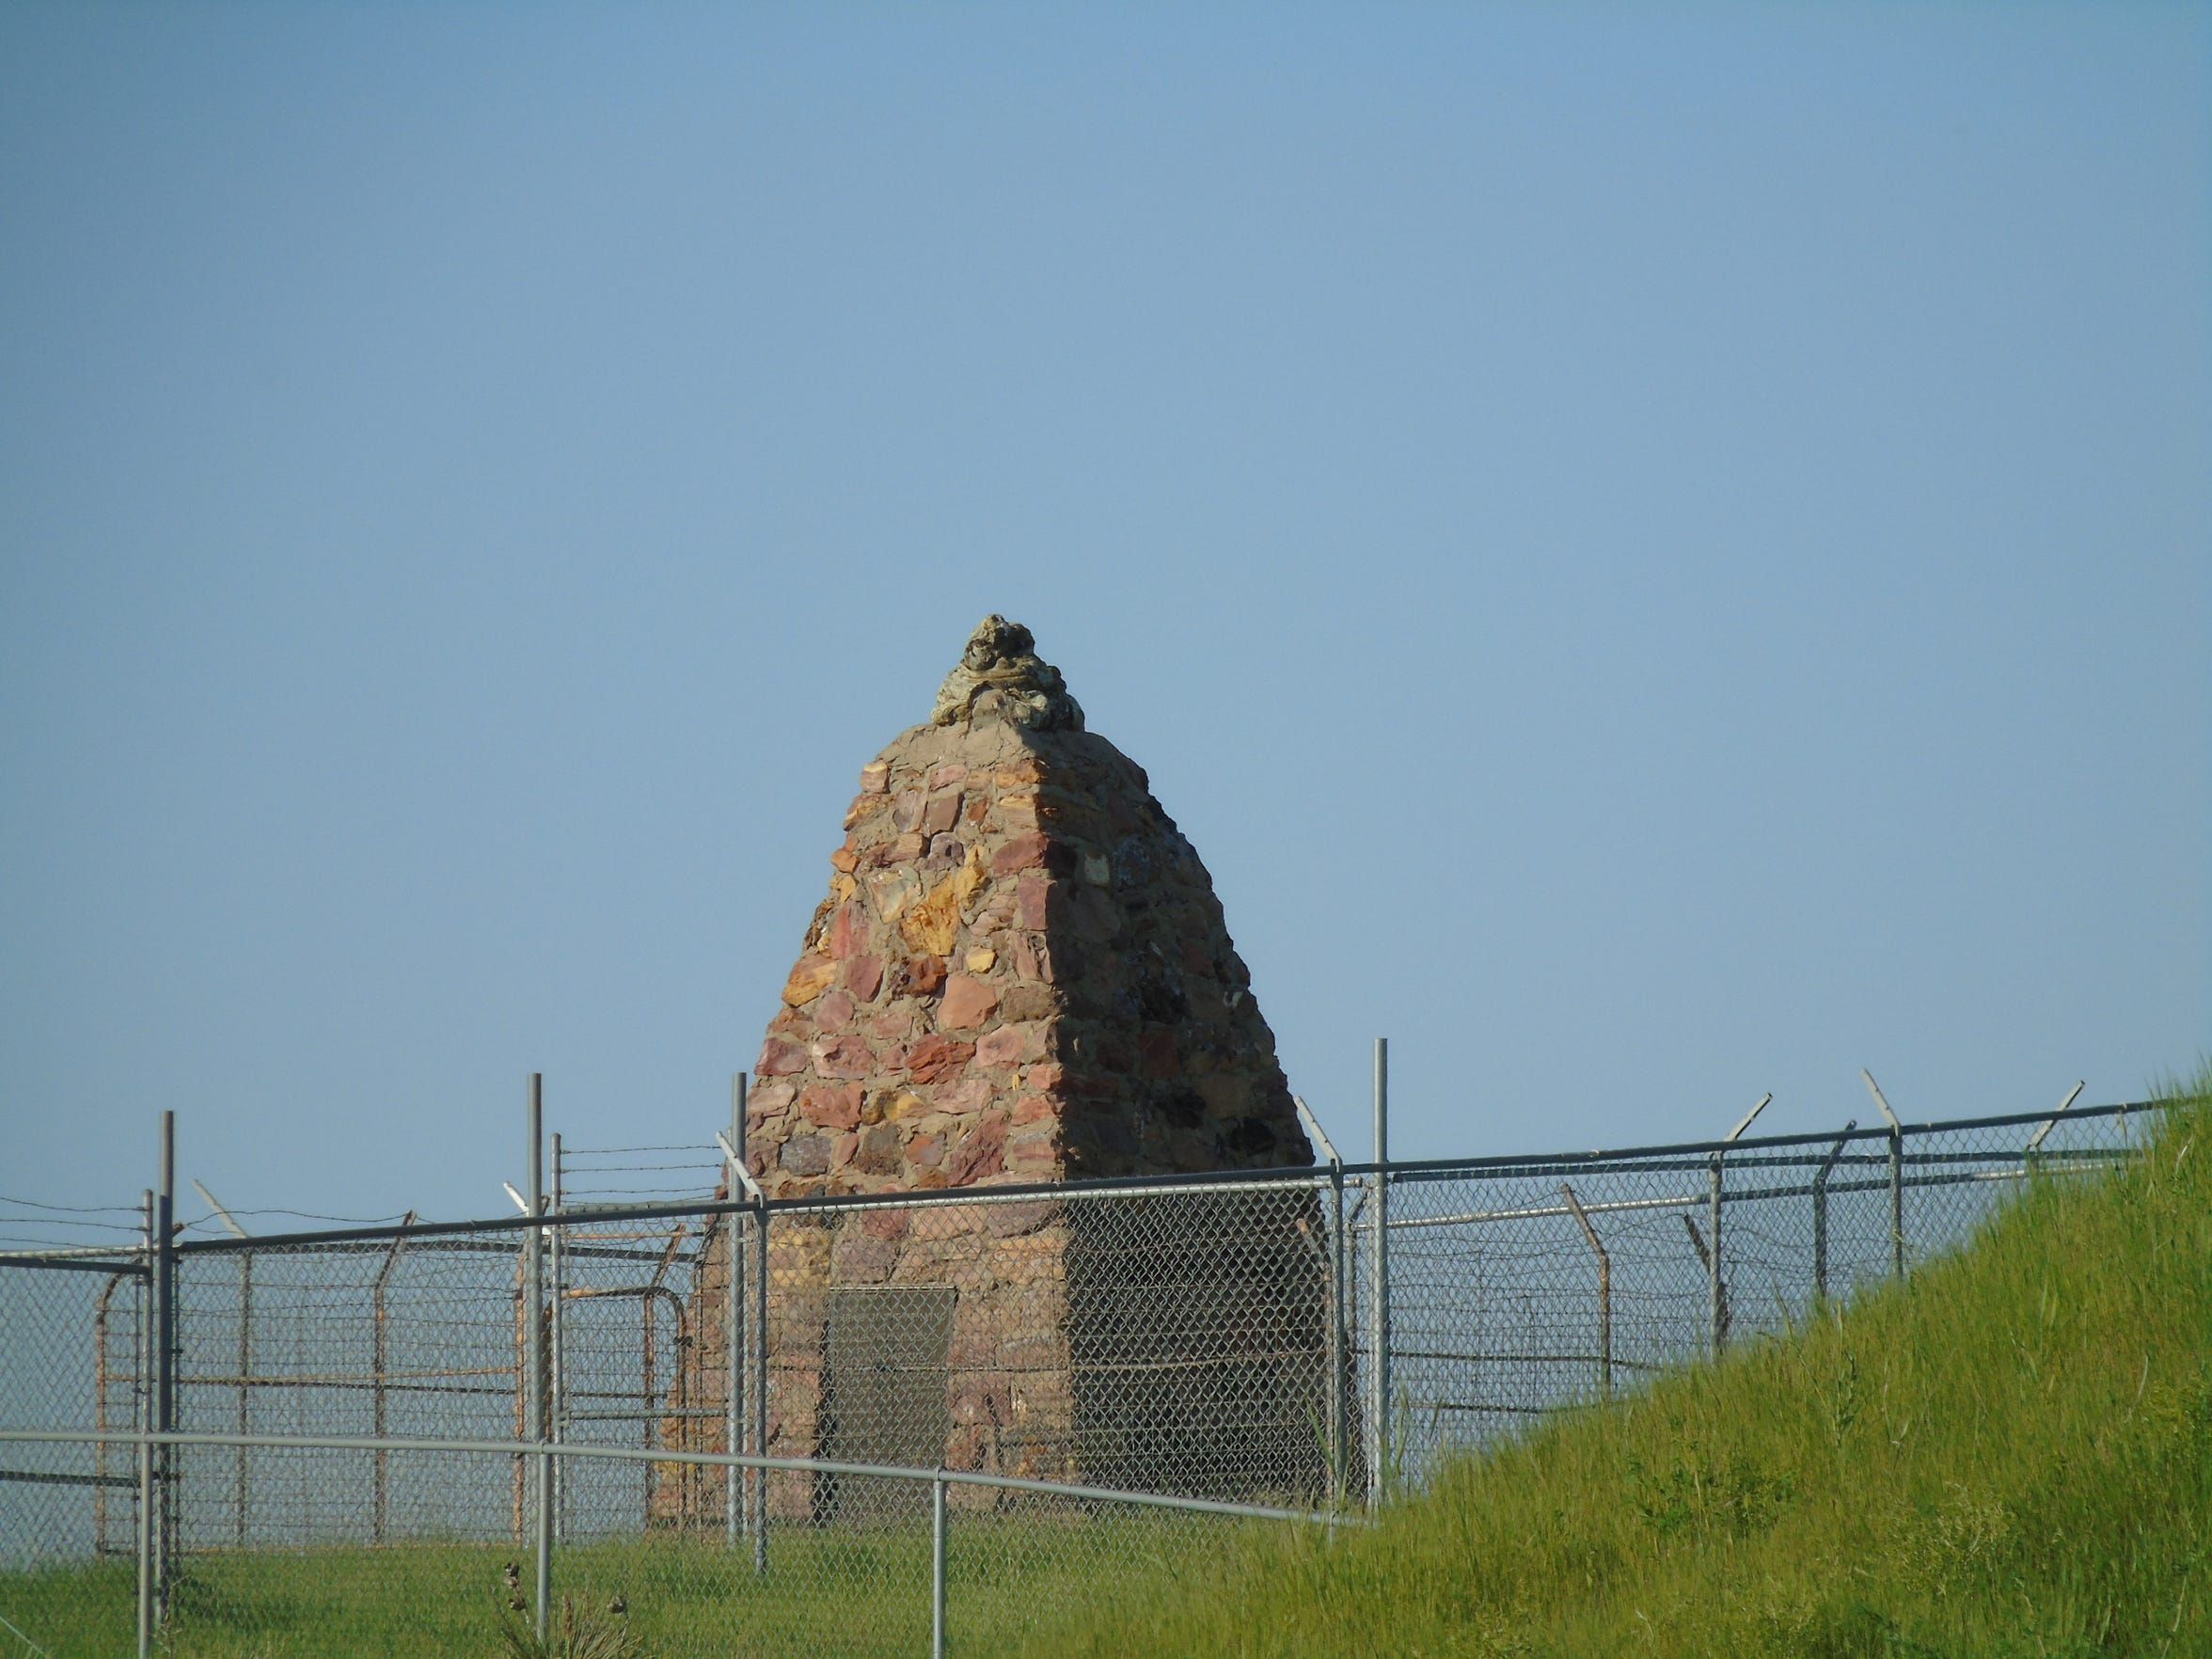 Busby is home to the Two Moons Memorial, which honors Cheyenne Chief Two Moons, who fought in at Reynolds, Rosebud, Little Big Horn and Wolf Mountain.